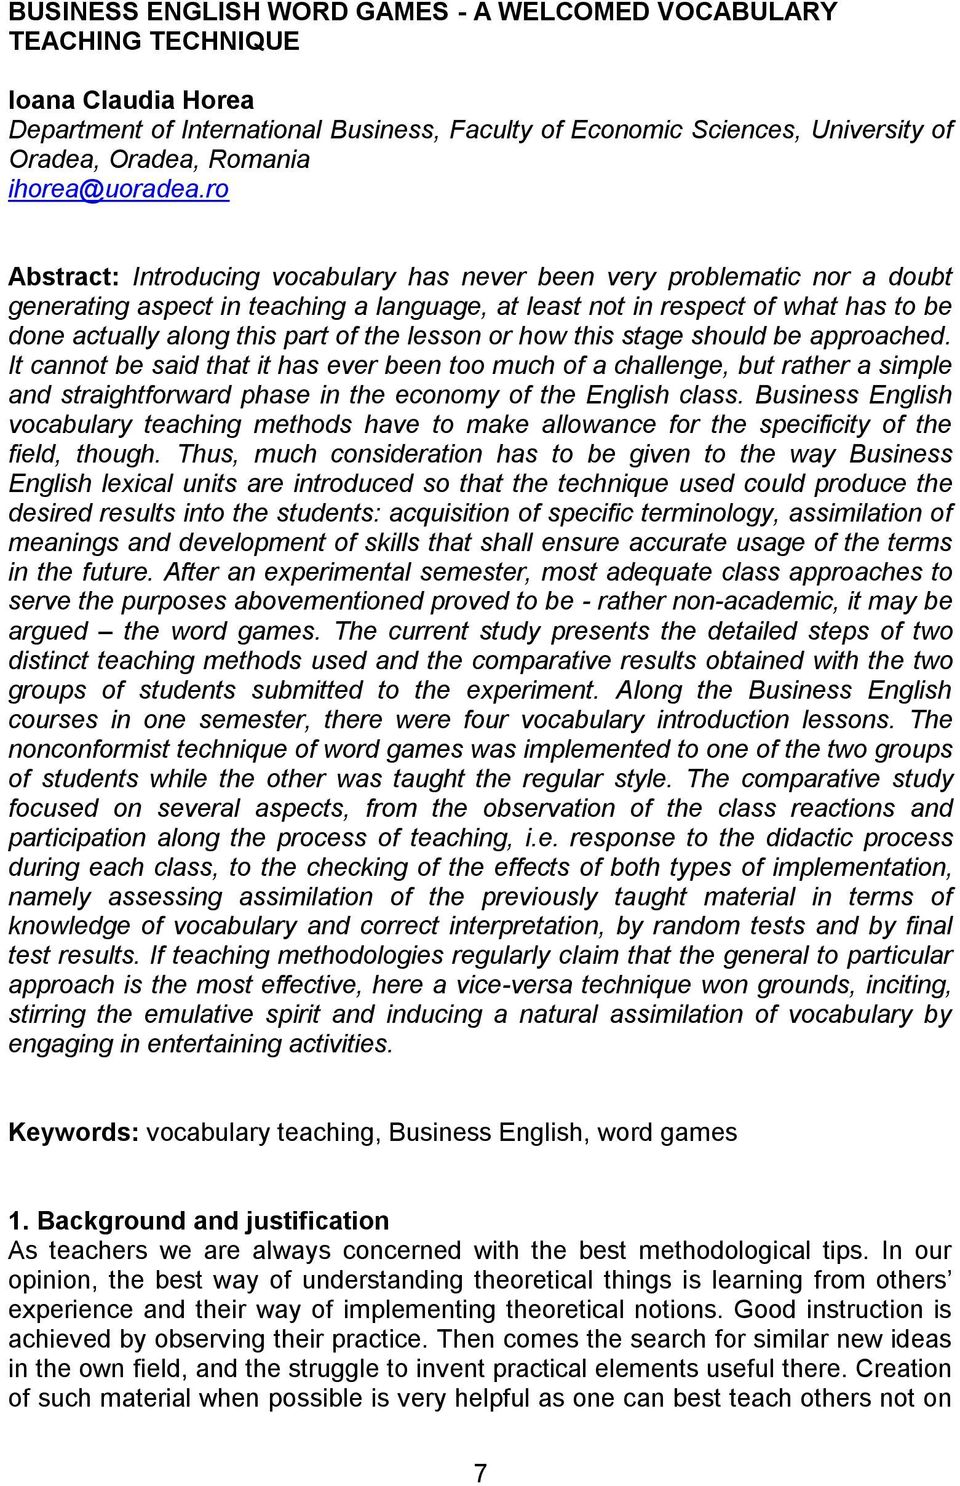 ro Abstract: Introducing vocabulary has never been very problematic nor a doubt generating aspect in teaching a language, at least not in respect of what has to be done actually along this part of